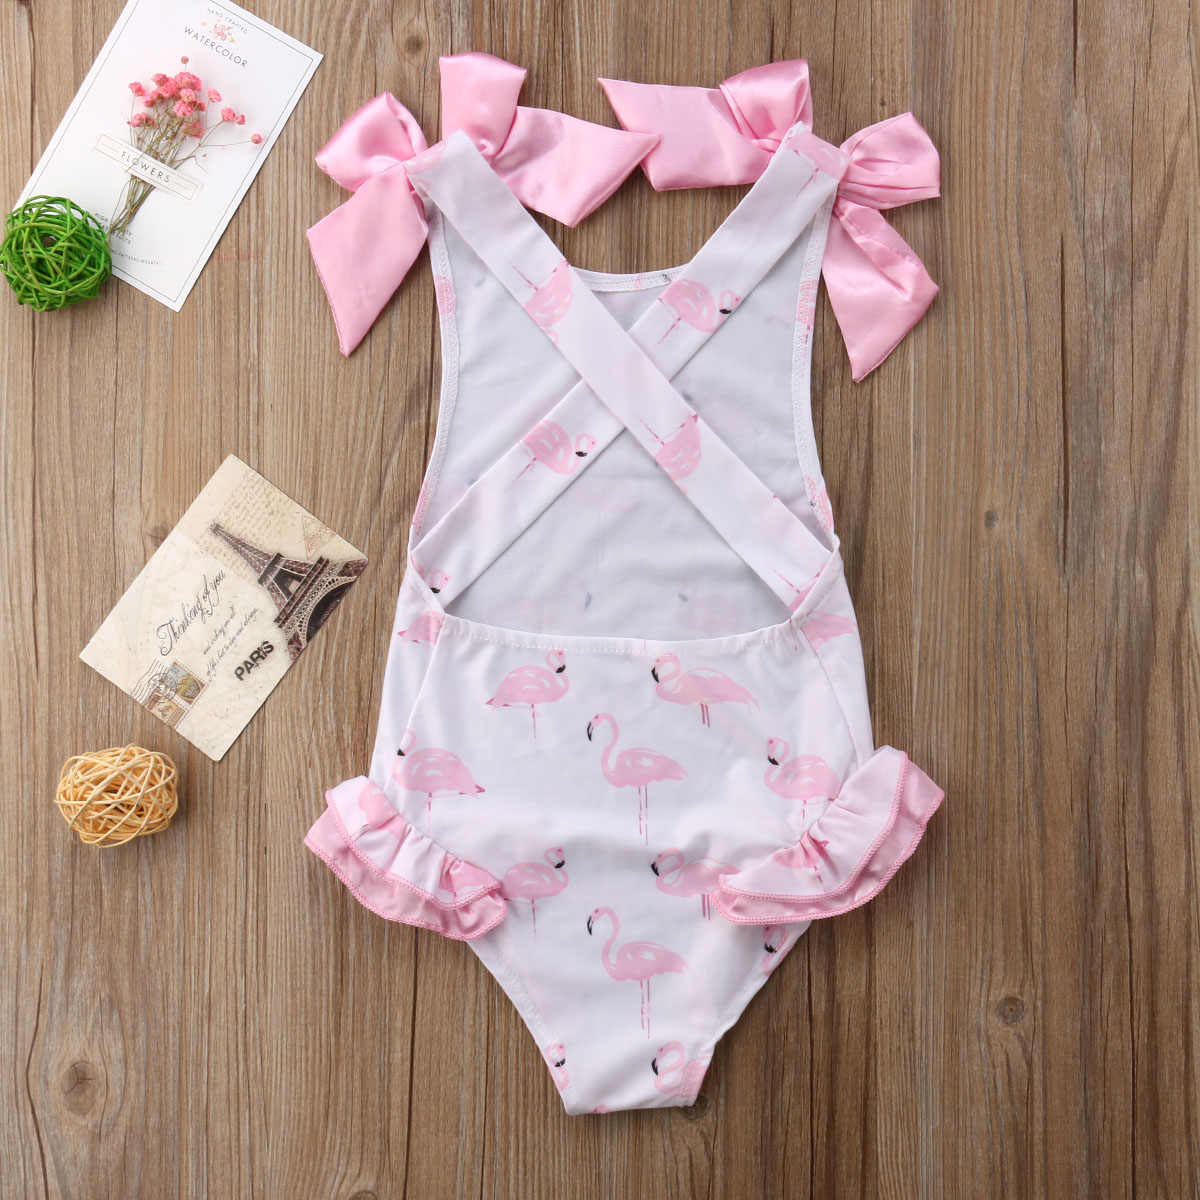 8ce32279657 ... Summer Baby Girl Bow Swimsuit Flamingo Kids Bodysuit Swimming Clothes  Swimwear Bathing Suit For Baby Girl